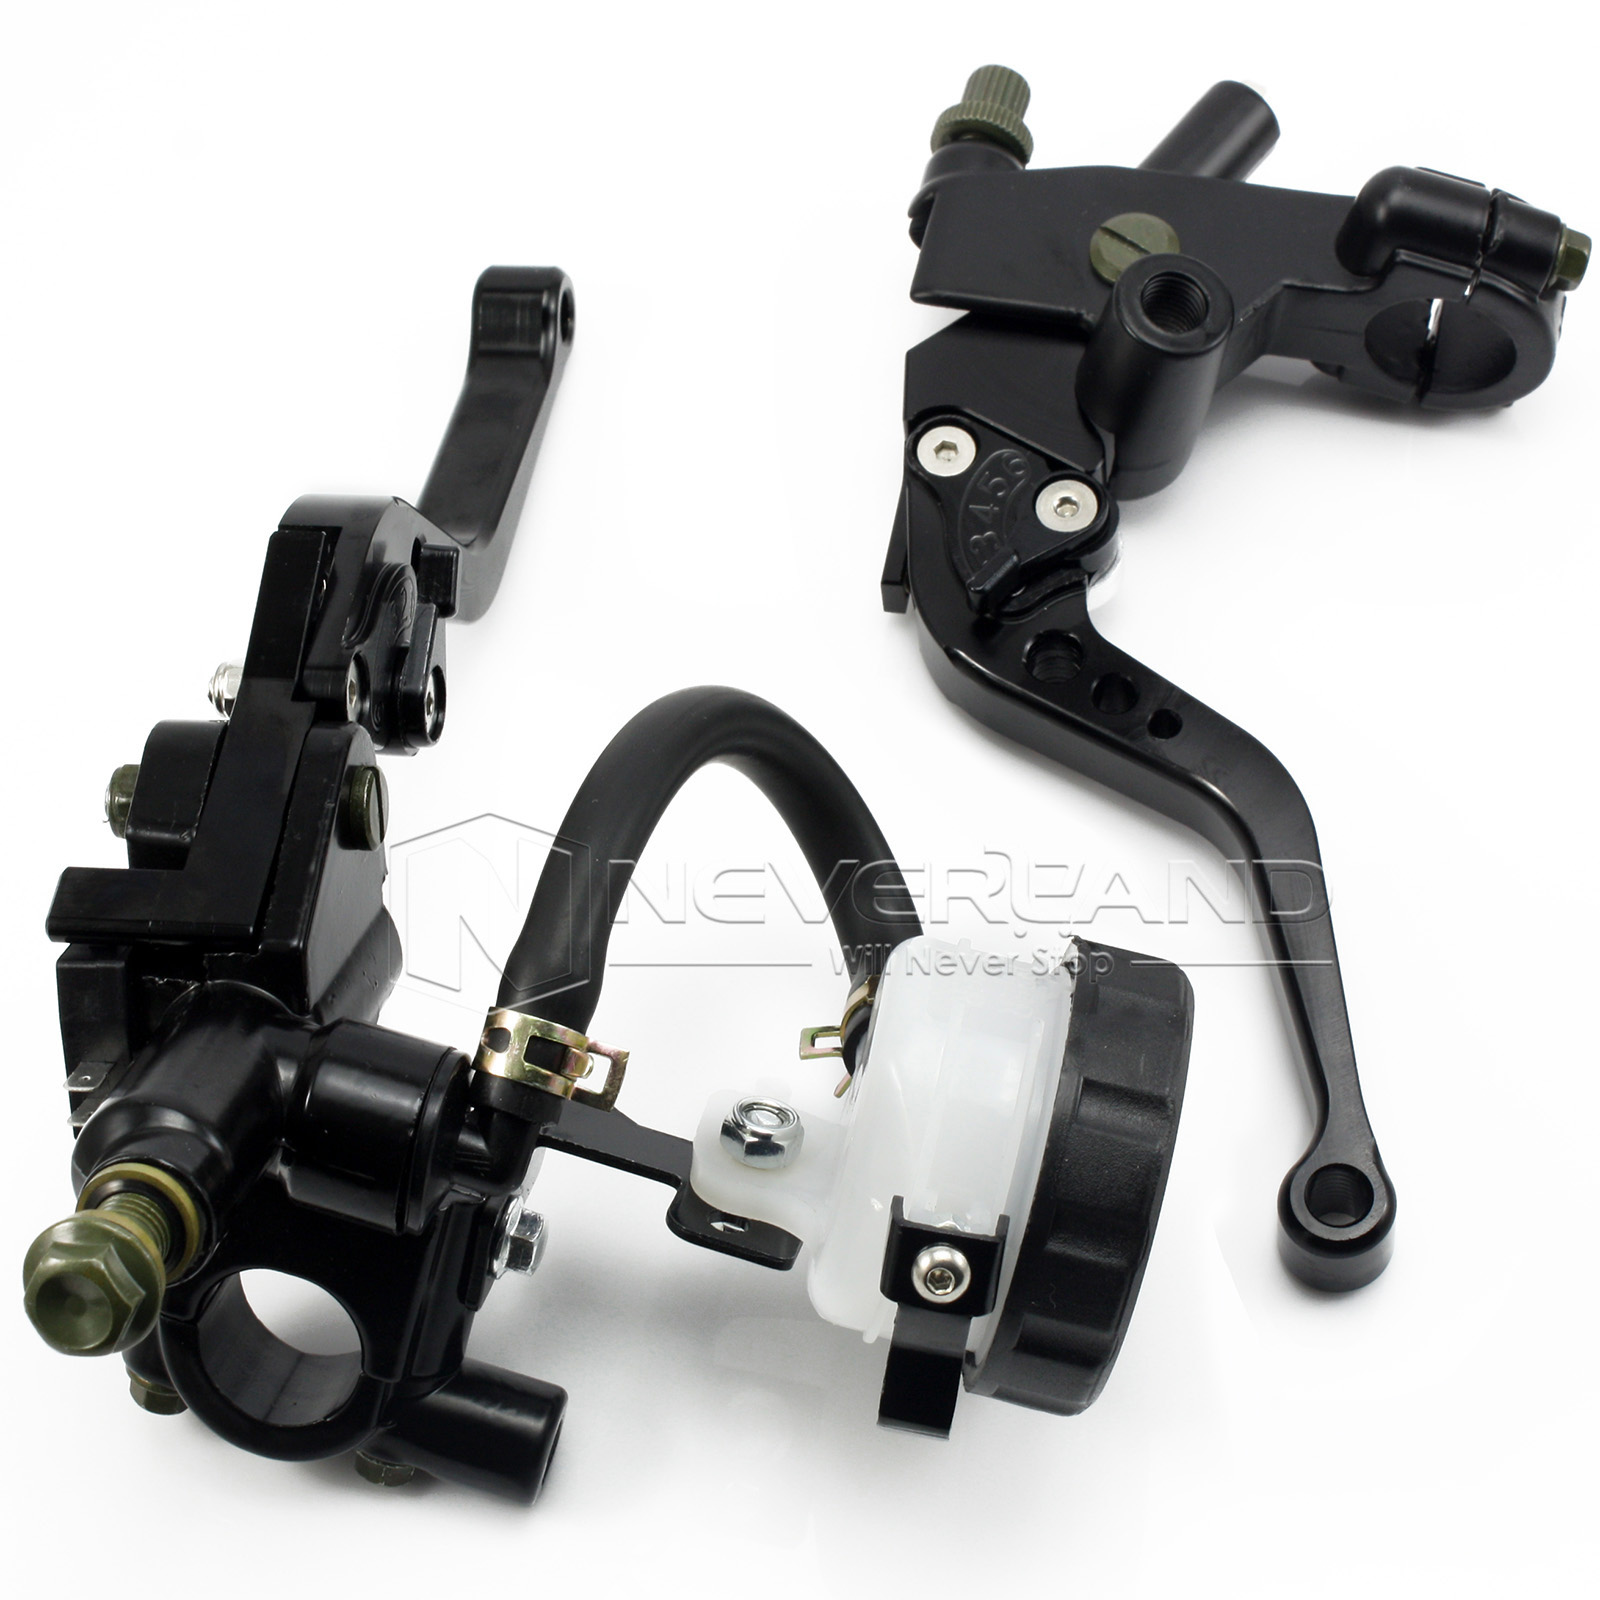 Universal CNC 7/8 22mm Black Motorcycle Brake Clutch Levers Master Cylinder Reservoir Set For Honda Suzuki Kawasaki Yamaha D10 1pcs high quality 1156 ba15s p21w 15 smd 2835 canbus led car auto indicator turn side light parking bulb lamp dc 12v